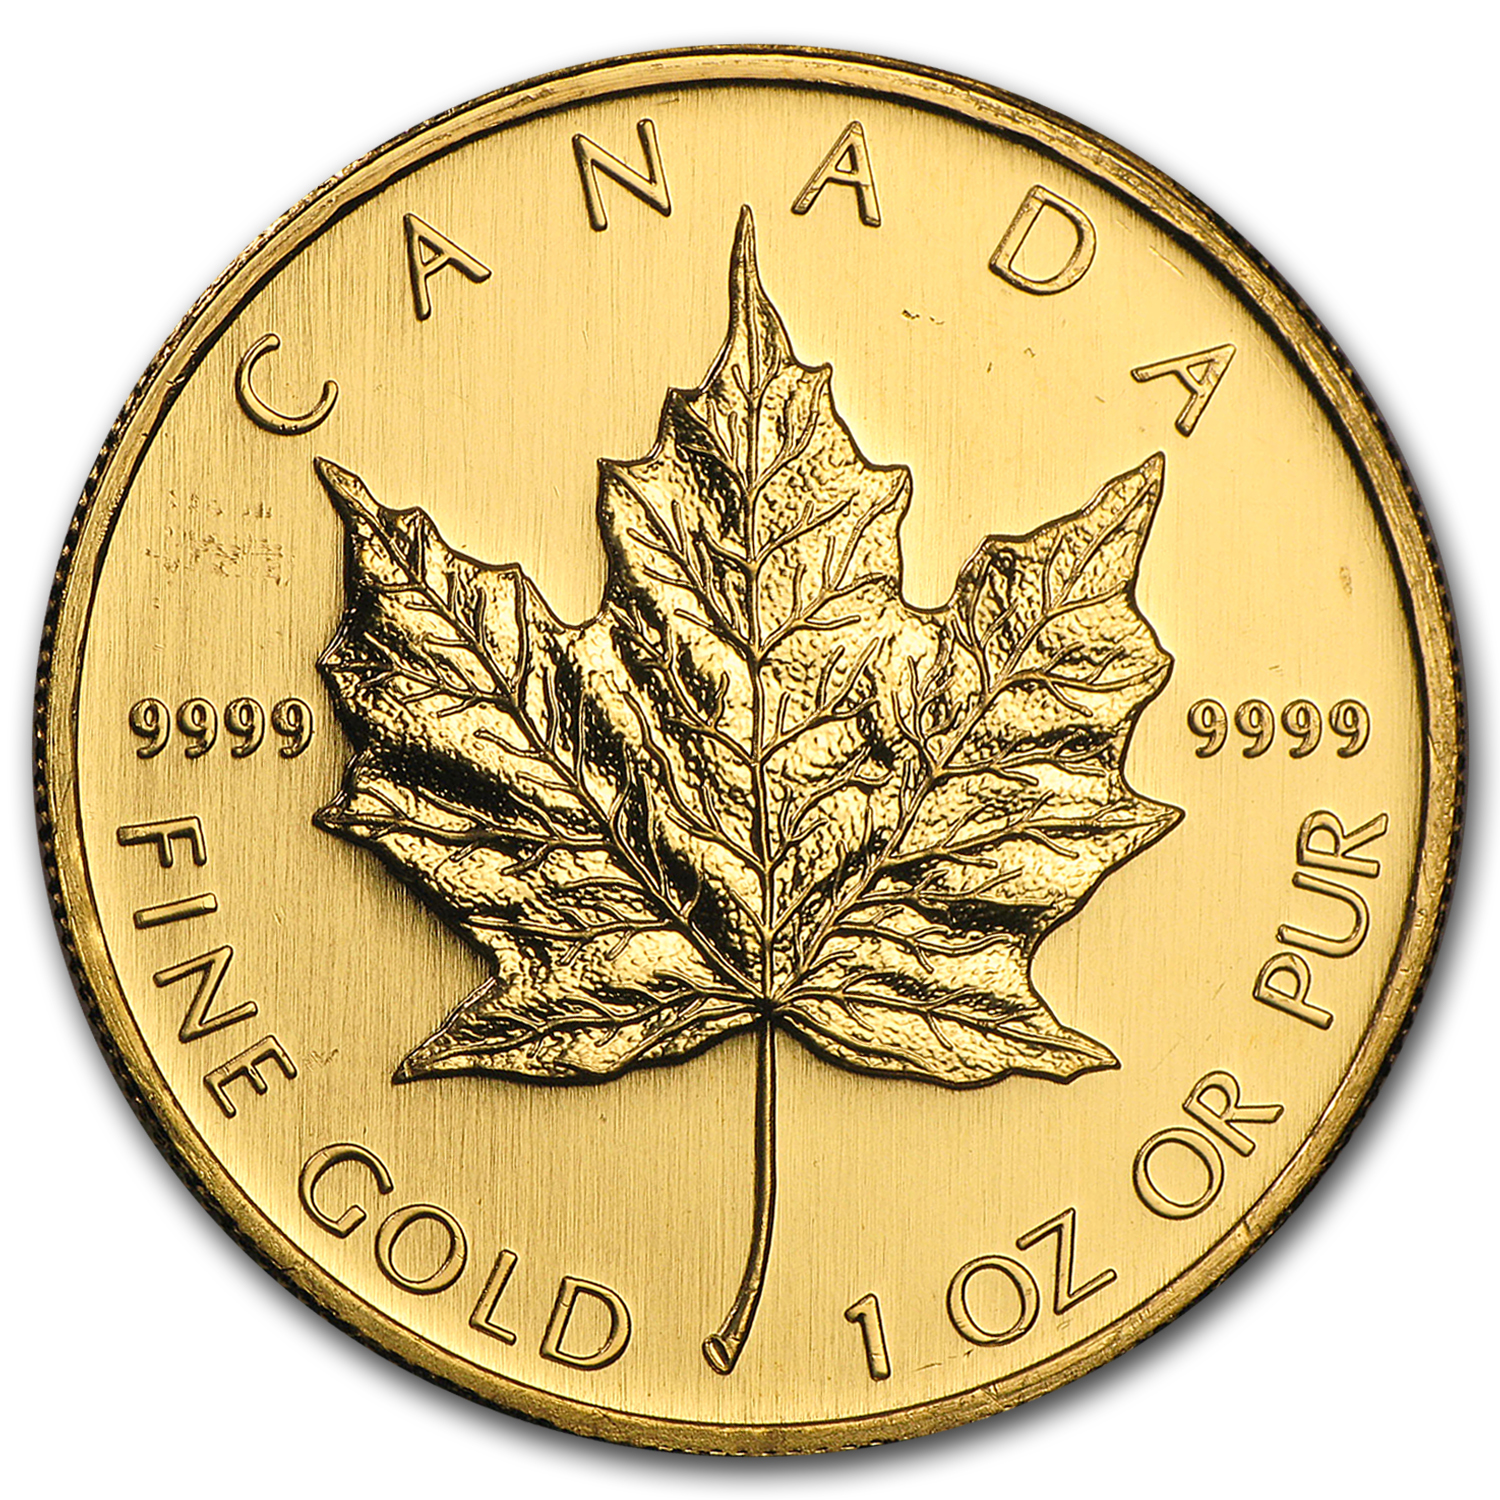 2008 Canada 1 oz Gold Maple Leaf BU